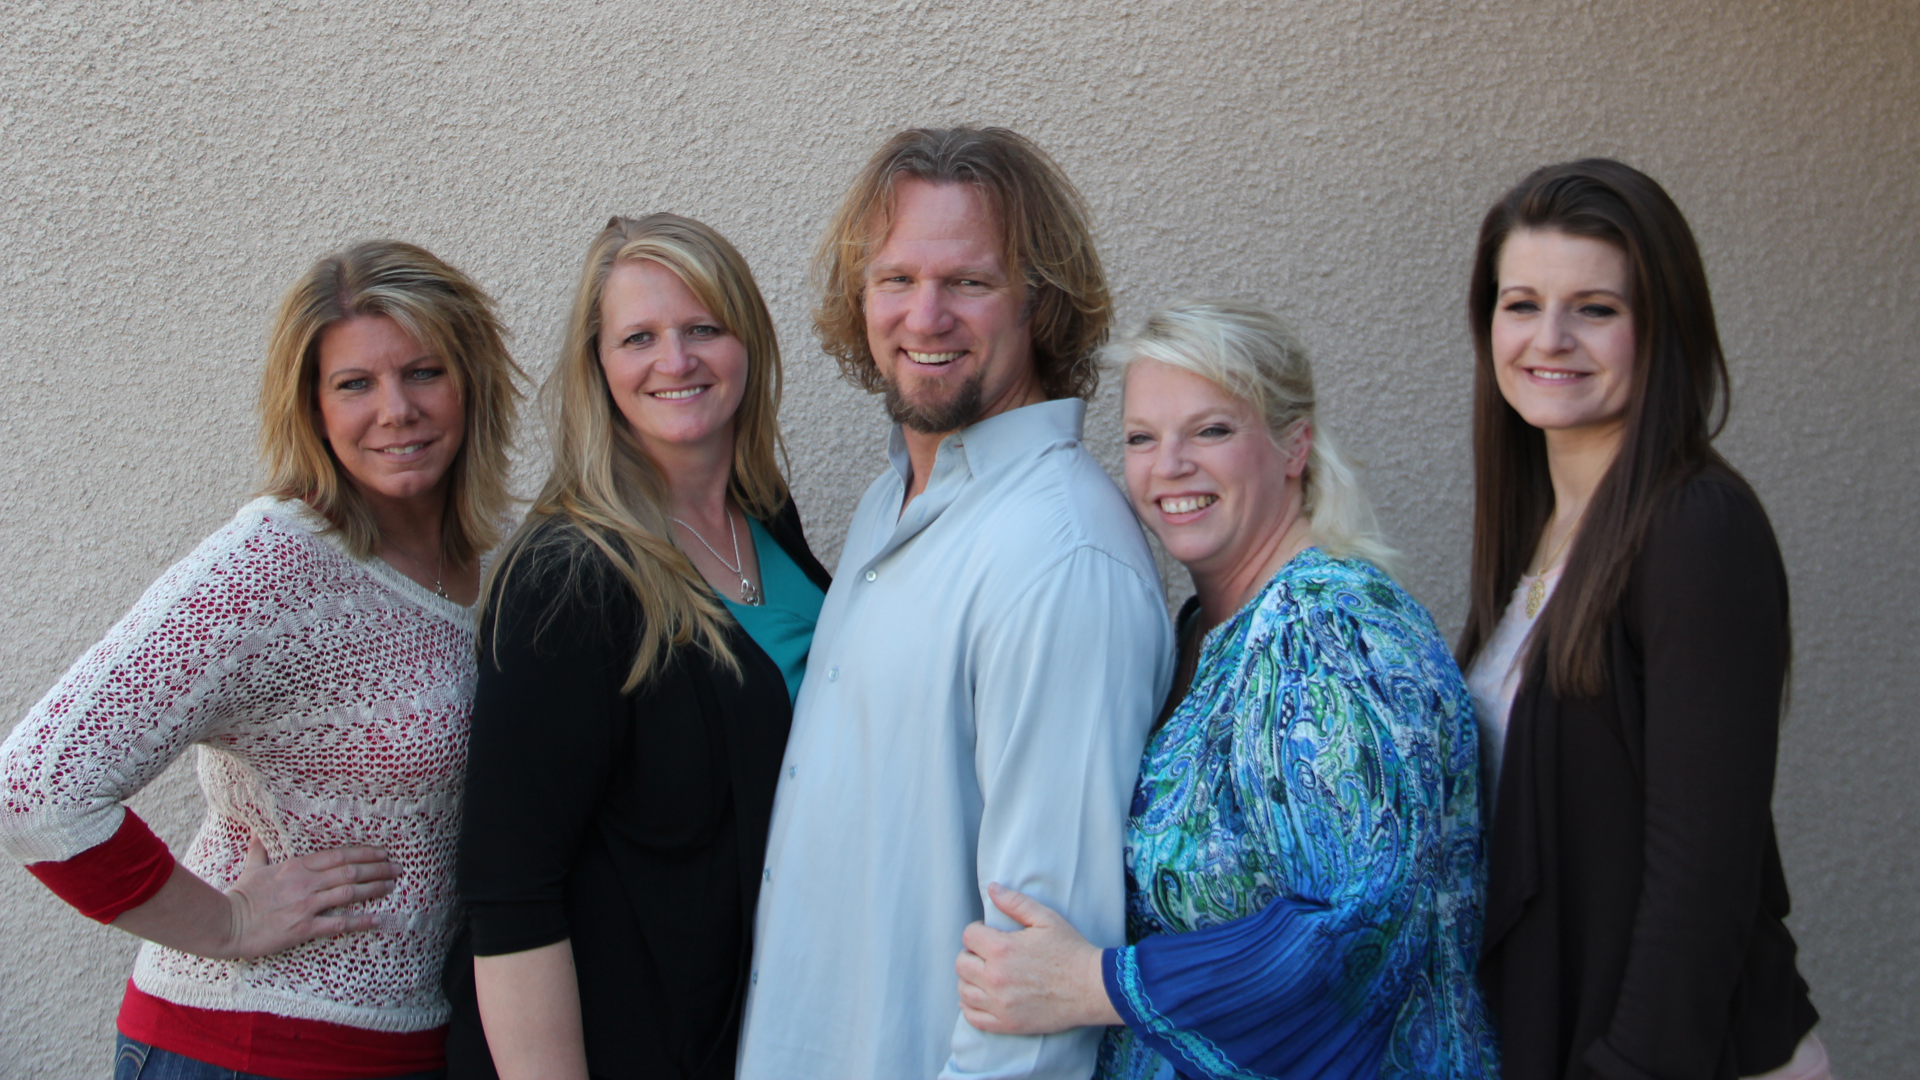 Image: Kody Brown (center) with his sister wives (L to R), Meri, Christine, Janelle and Robyn.